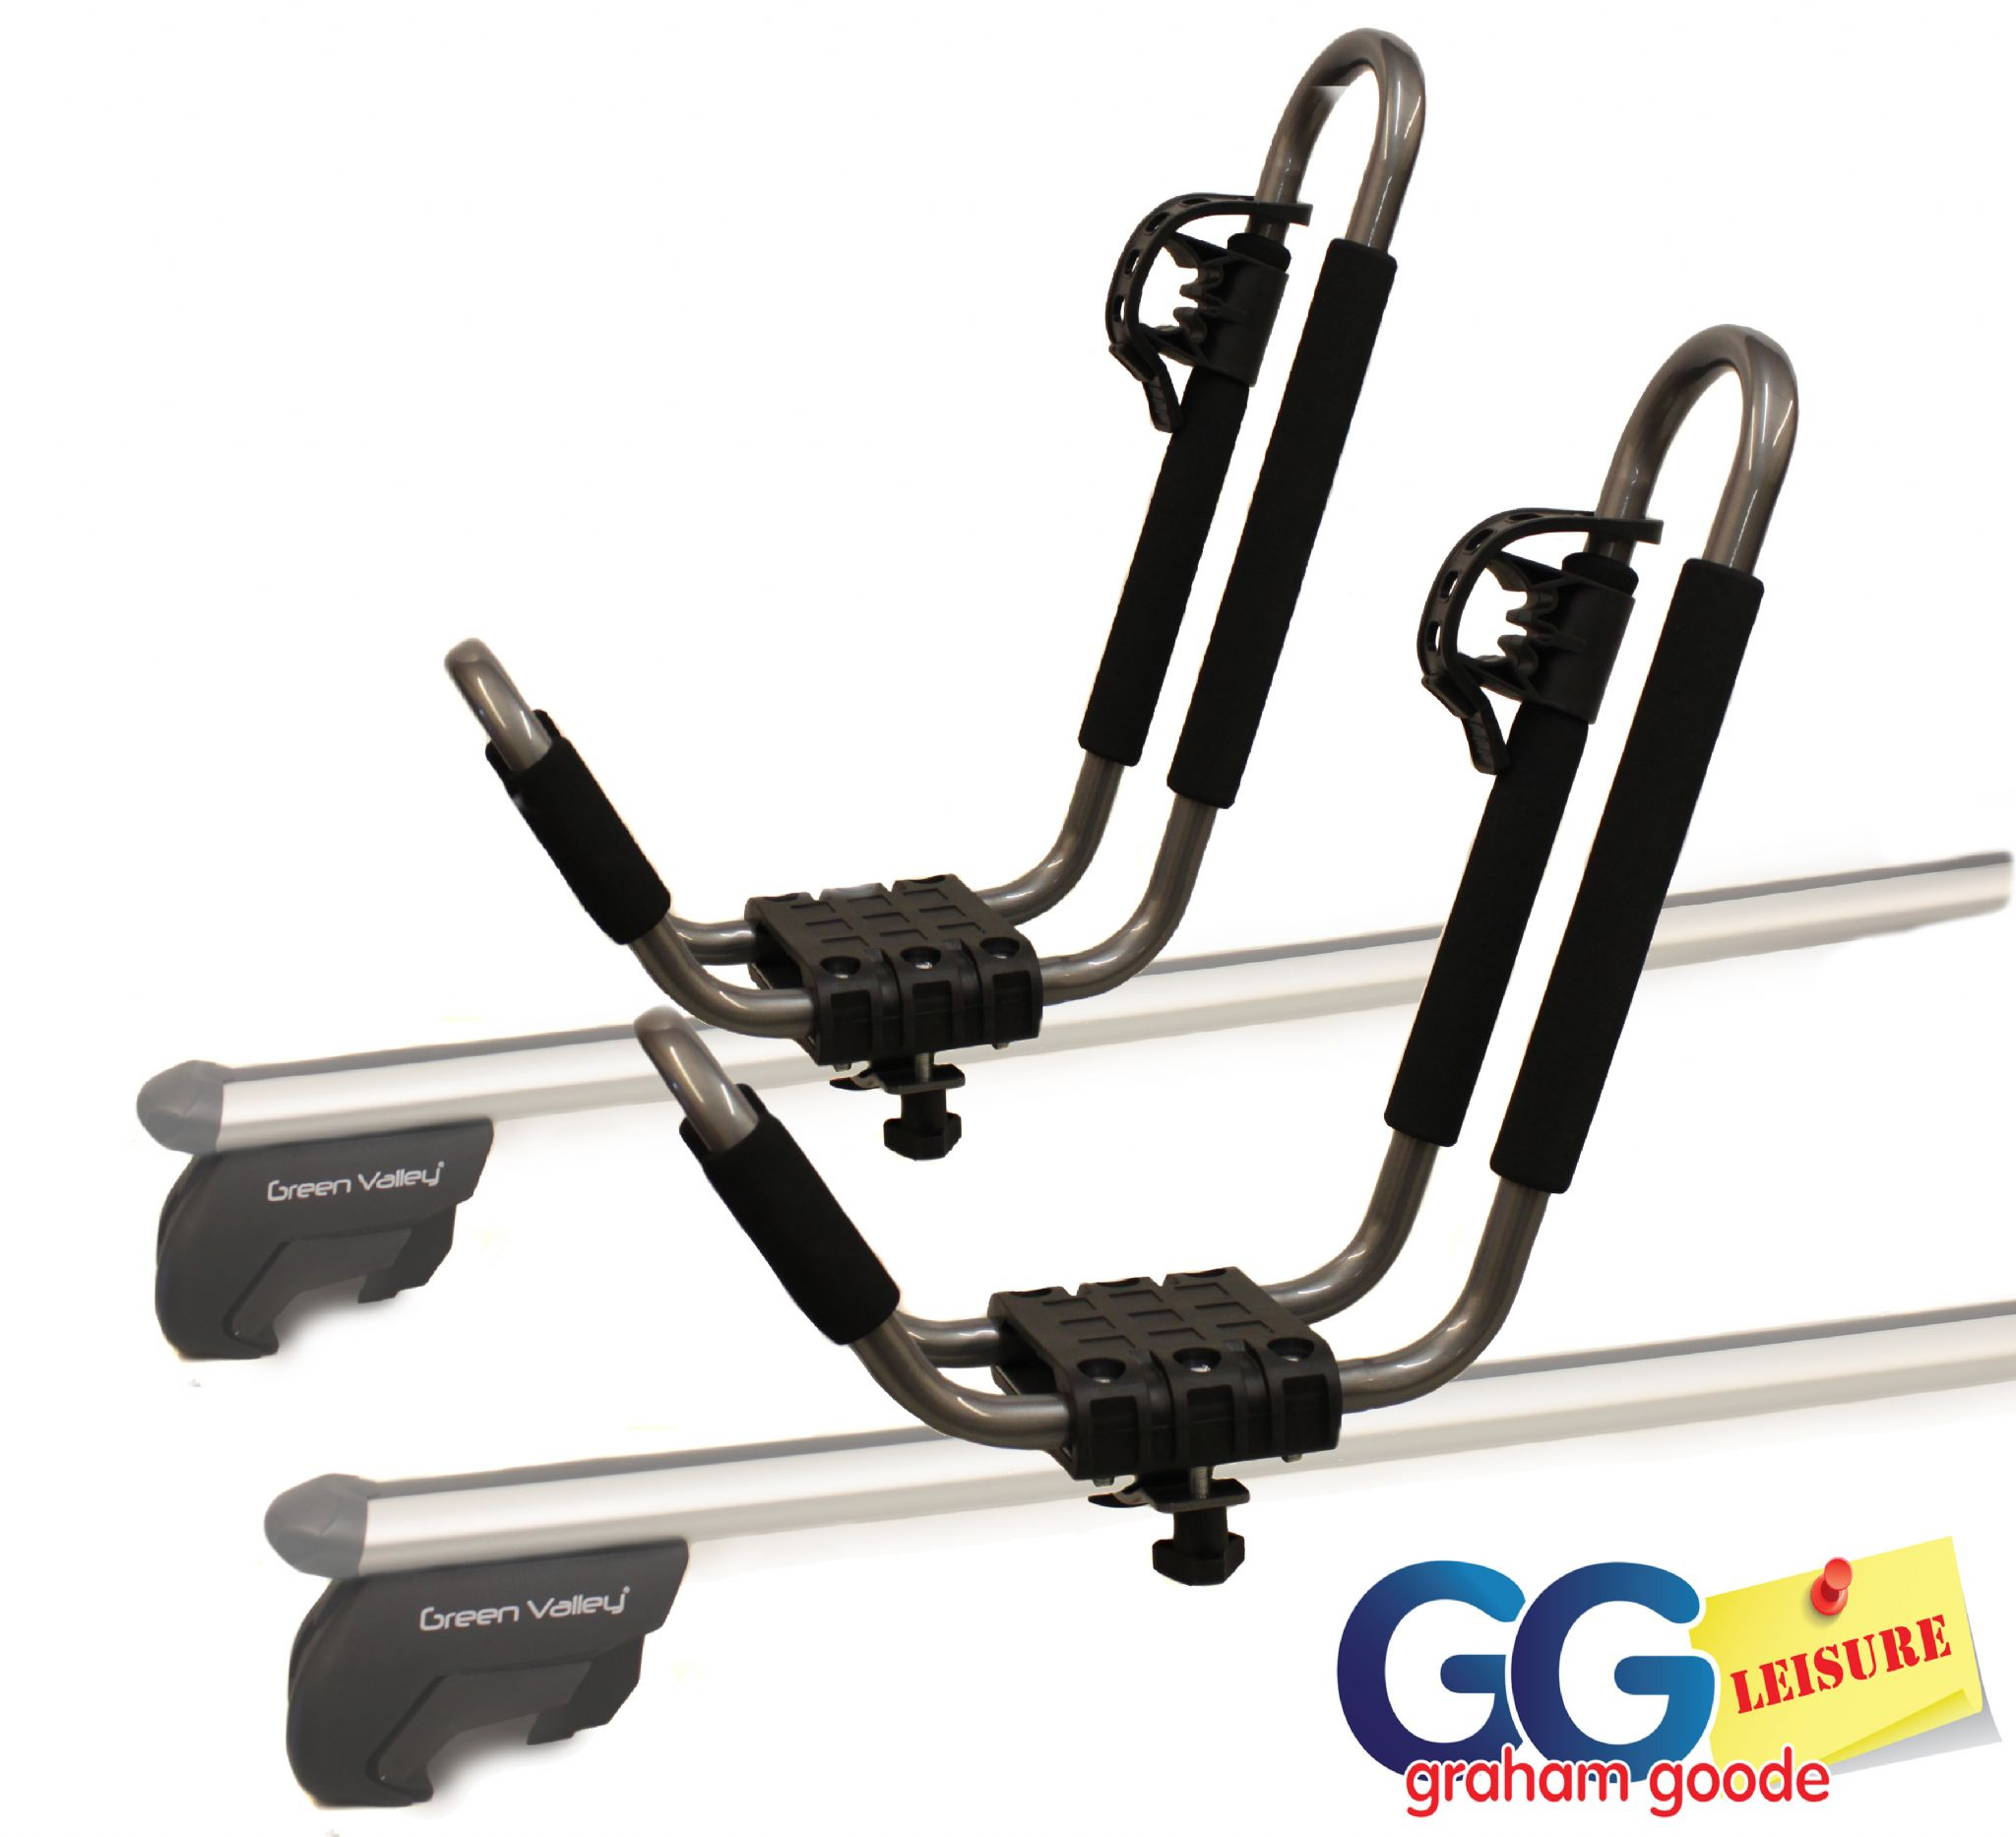 outdoorplay port specs a kayak pro com hull main roof thule car rack carrier